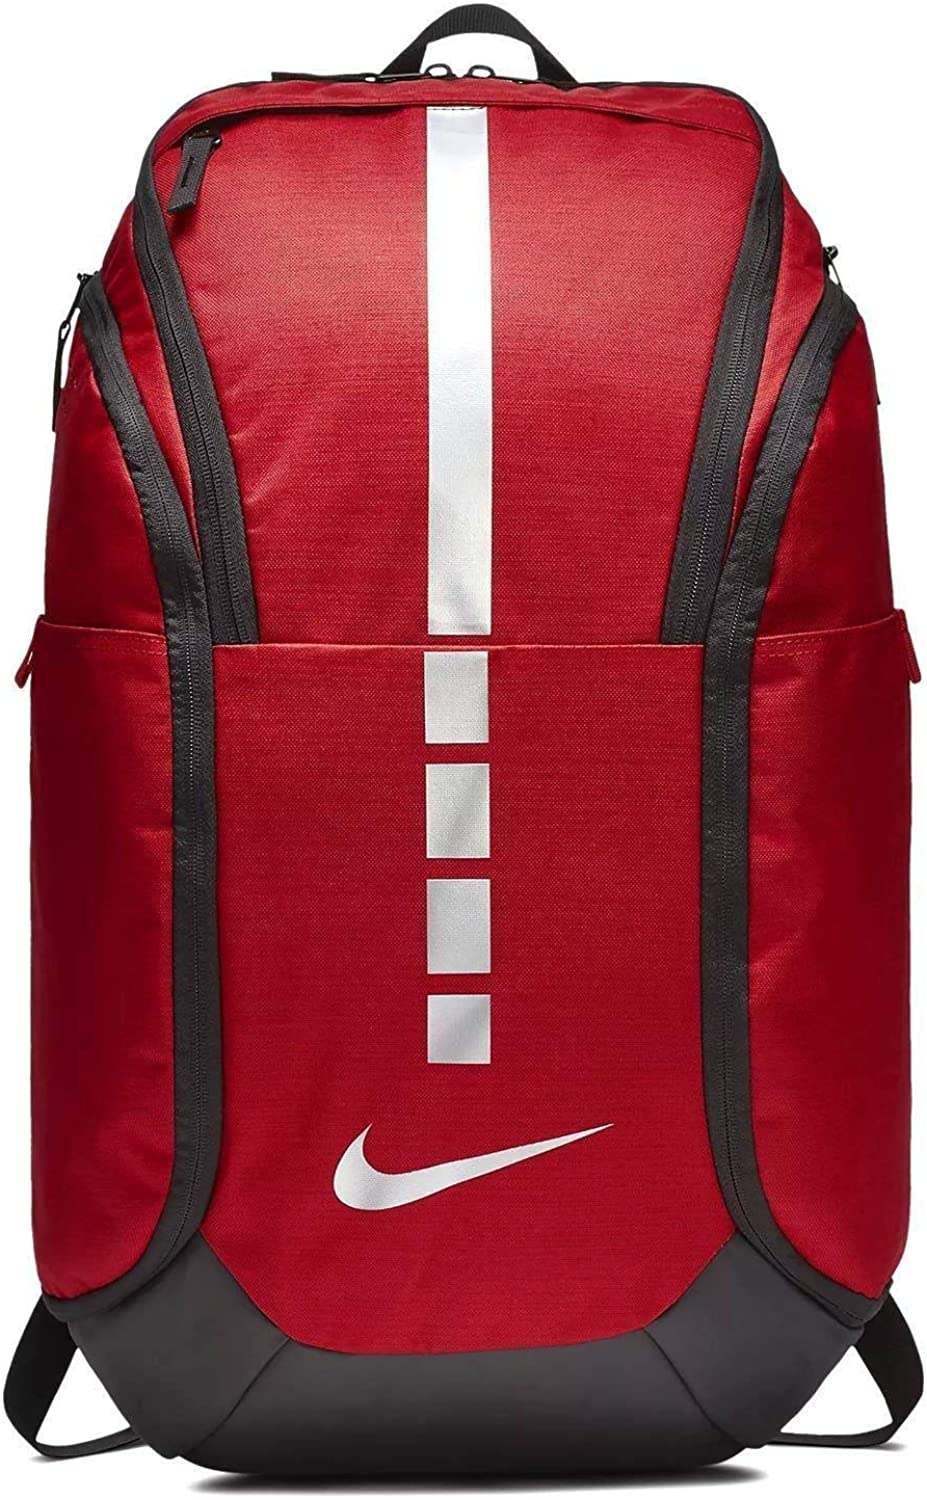 Nike Hoops Elite Hoops Pro Basketball Backpack University Red Black Metallic Cool Grey,One Size